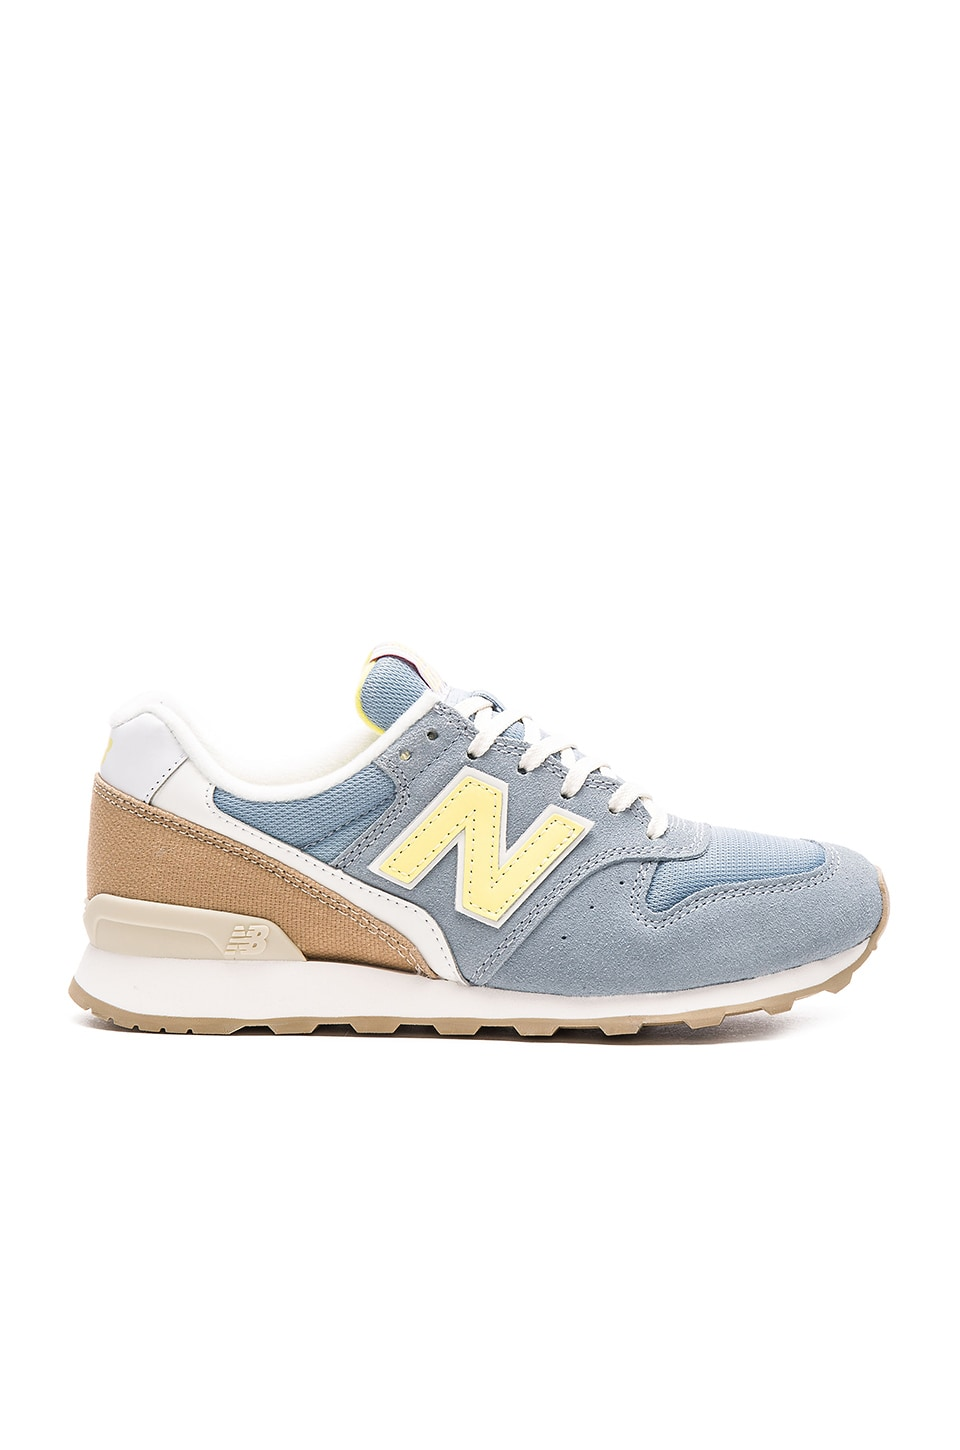 New Balance Lakeview Sneaker in Grey & Yellow